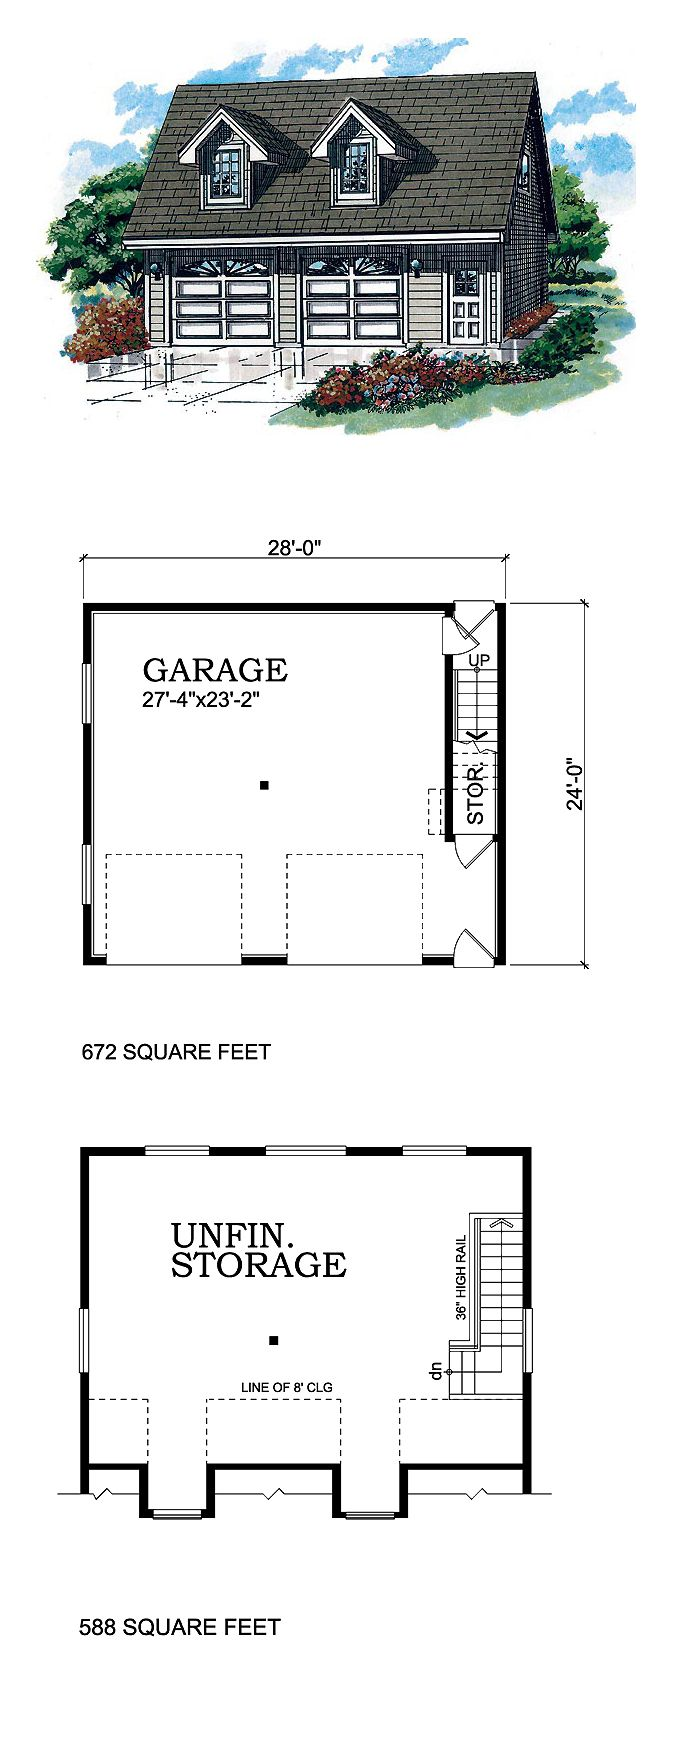 17 best images about two car garage plans on pinterest traditional side door and 2 car garage - Two entrance house plans discretion in the family ...